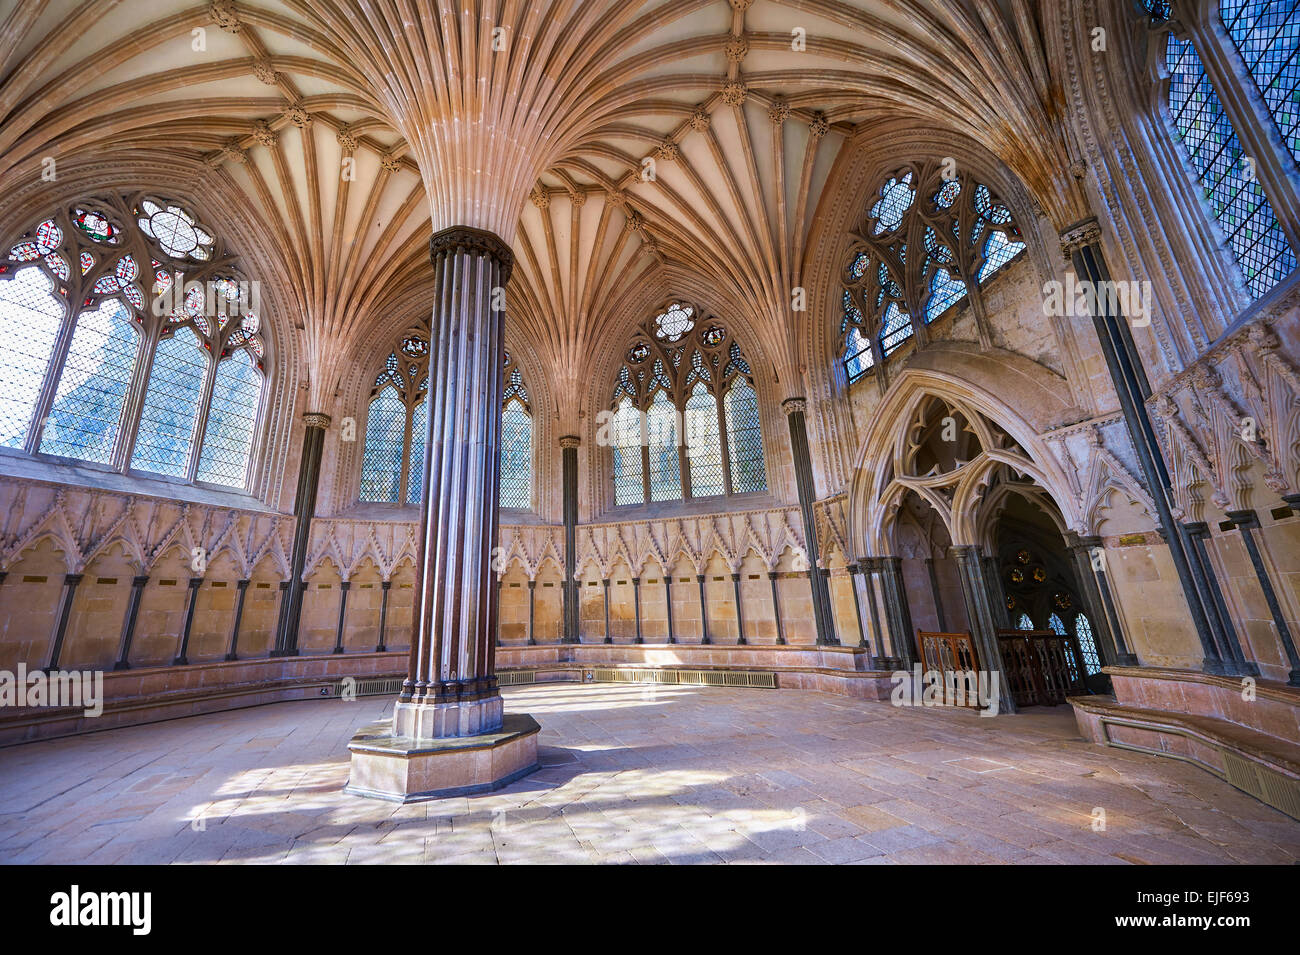 The Vaulted Ceiling Of The Chapter House Of The Medieval